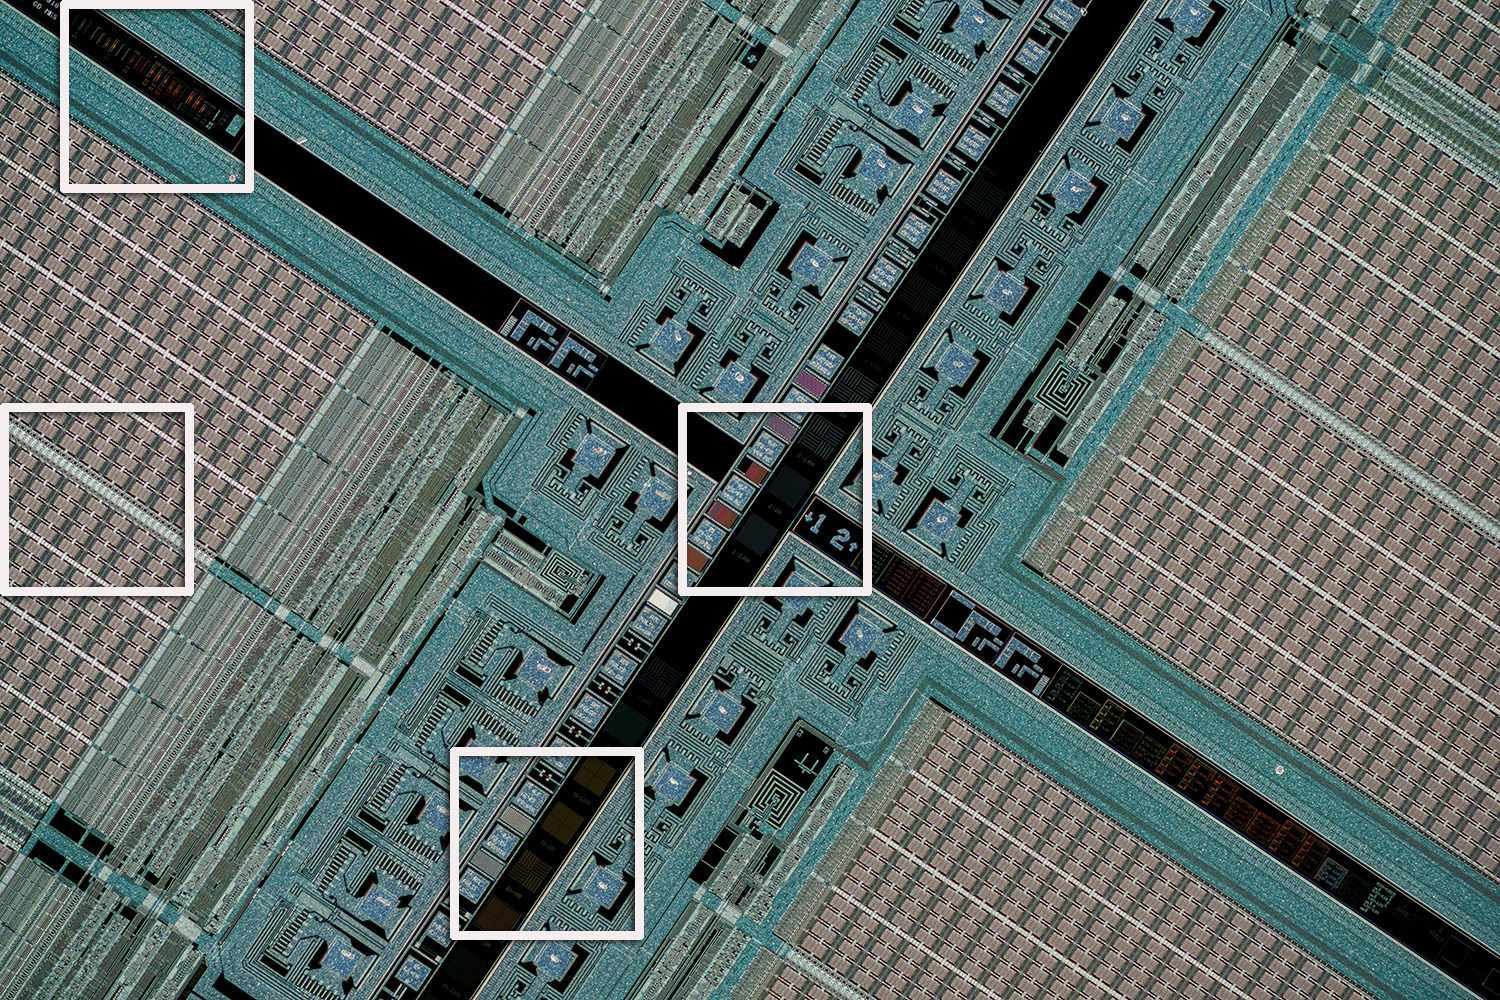 Silicon wafer test target with crop areas outlined in white.